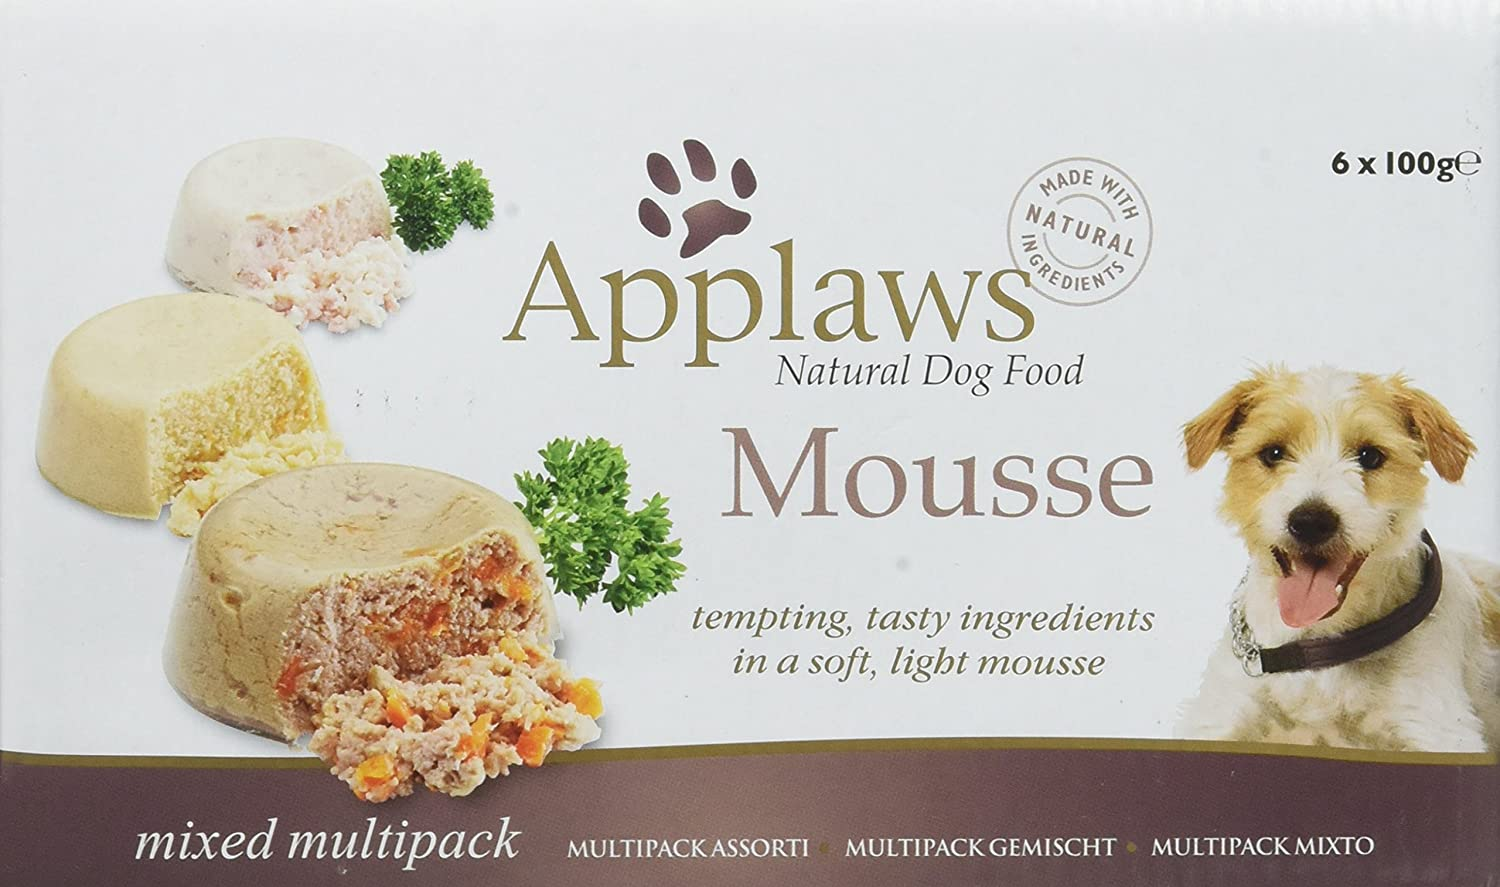 Applaws Dog Mousse, Multipack, 100 g, Pack of 4, 24-Count